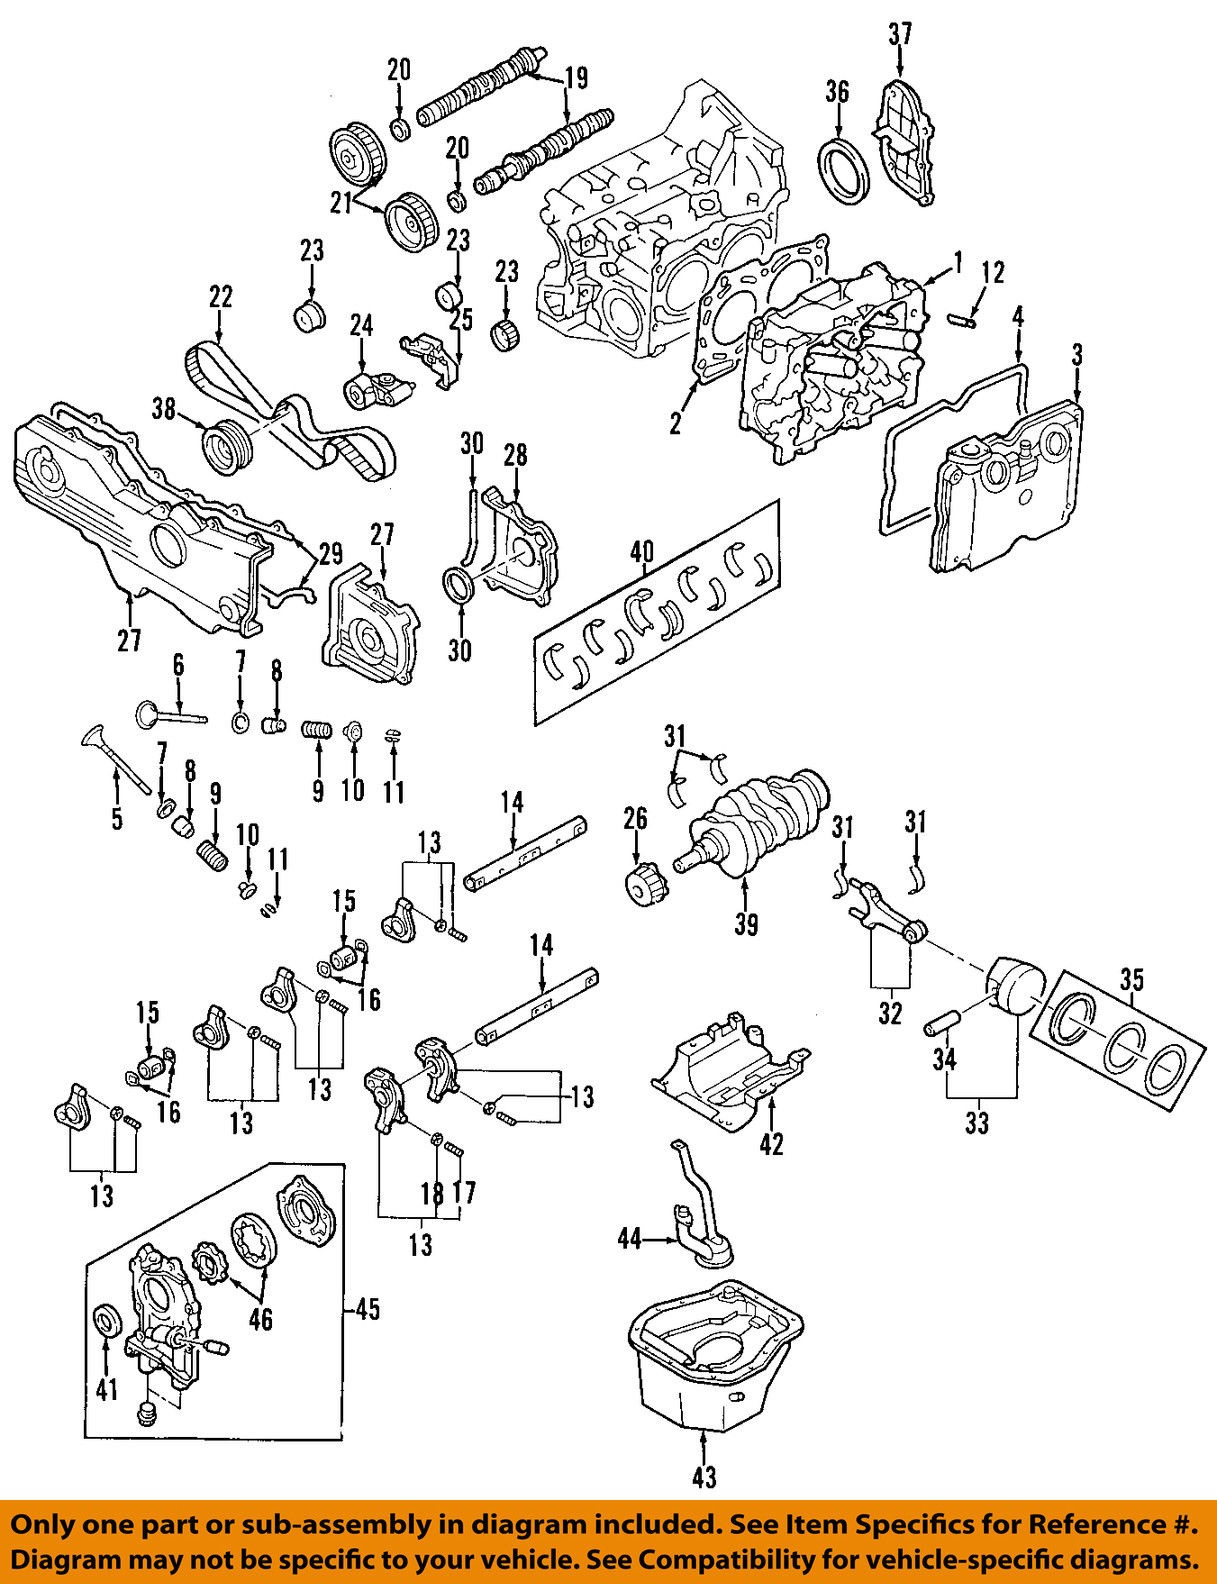 subaru impreza wrx sti engine ford focus exhaust system diagramsubaru impreza wrx sti engine ford focus exhaust system diagram subaru impreza wrx sti engine ford focus exhaust system diagram subaru